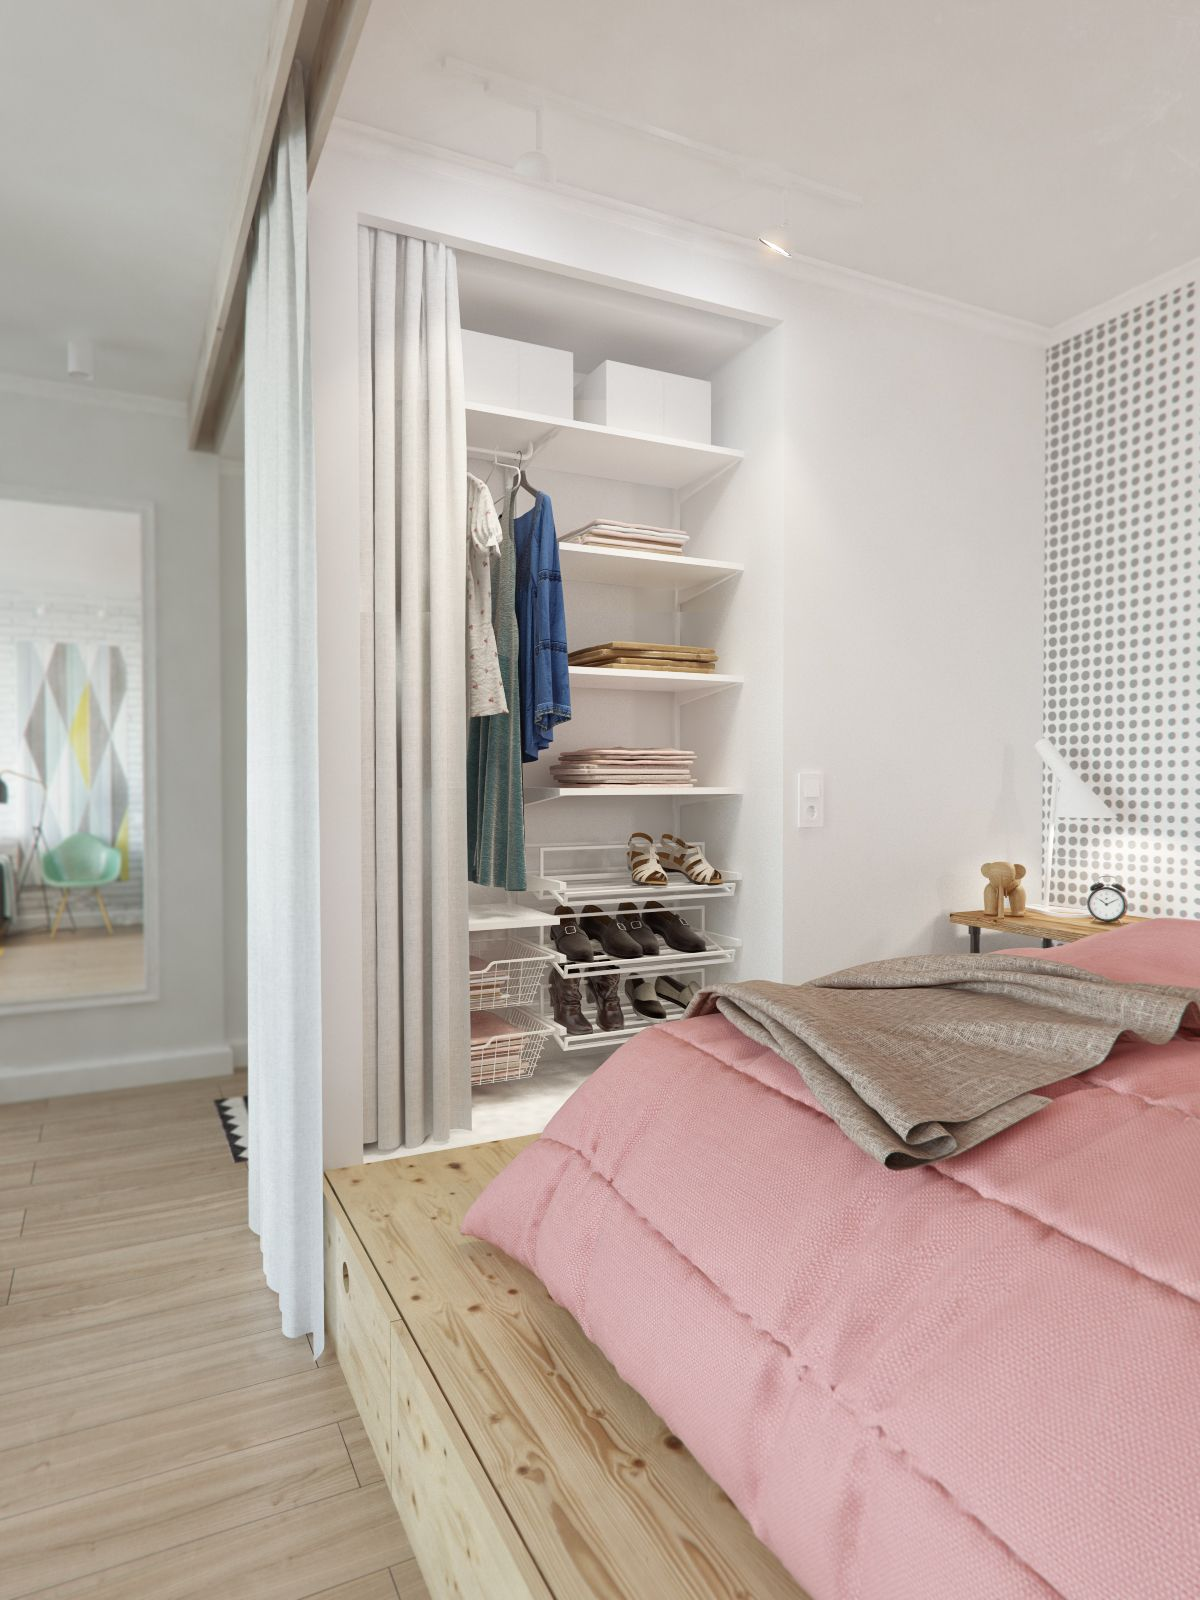 5-bedroom-design-with-pink-blanket-and-wall-white-iron-container-and-white-curtain-wall-with-wooden-frame